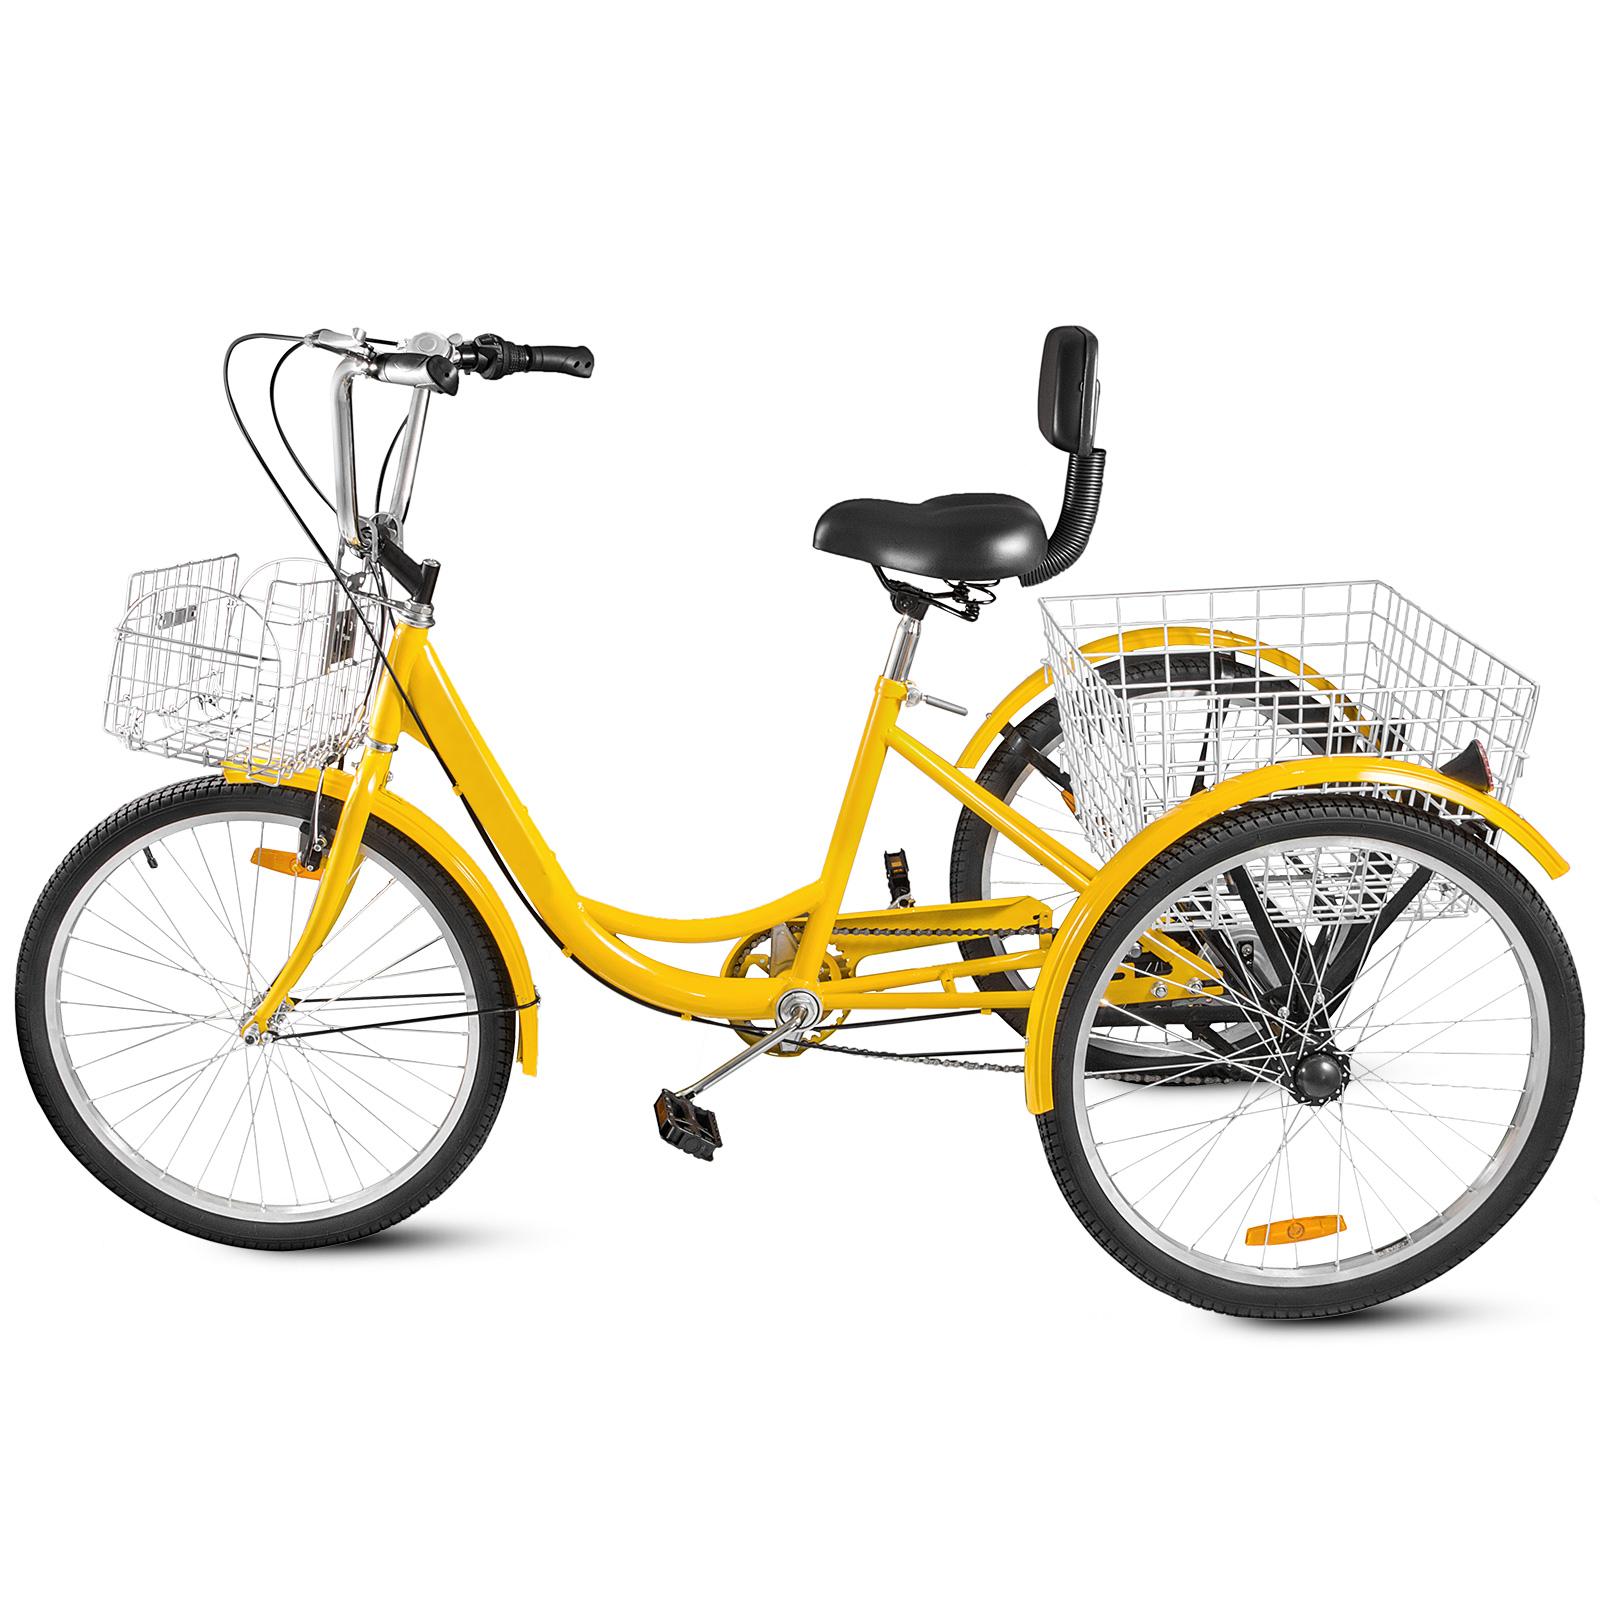 20-24-26-034-Adult-Tricycle-1-7-Speed-3-Wheel-For-Shopping-W-Installation-Tools miniature 382